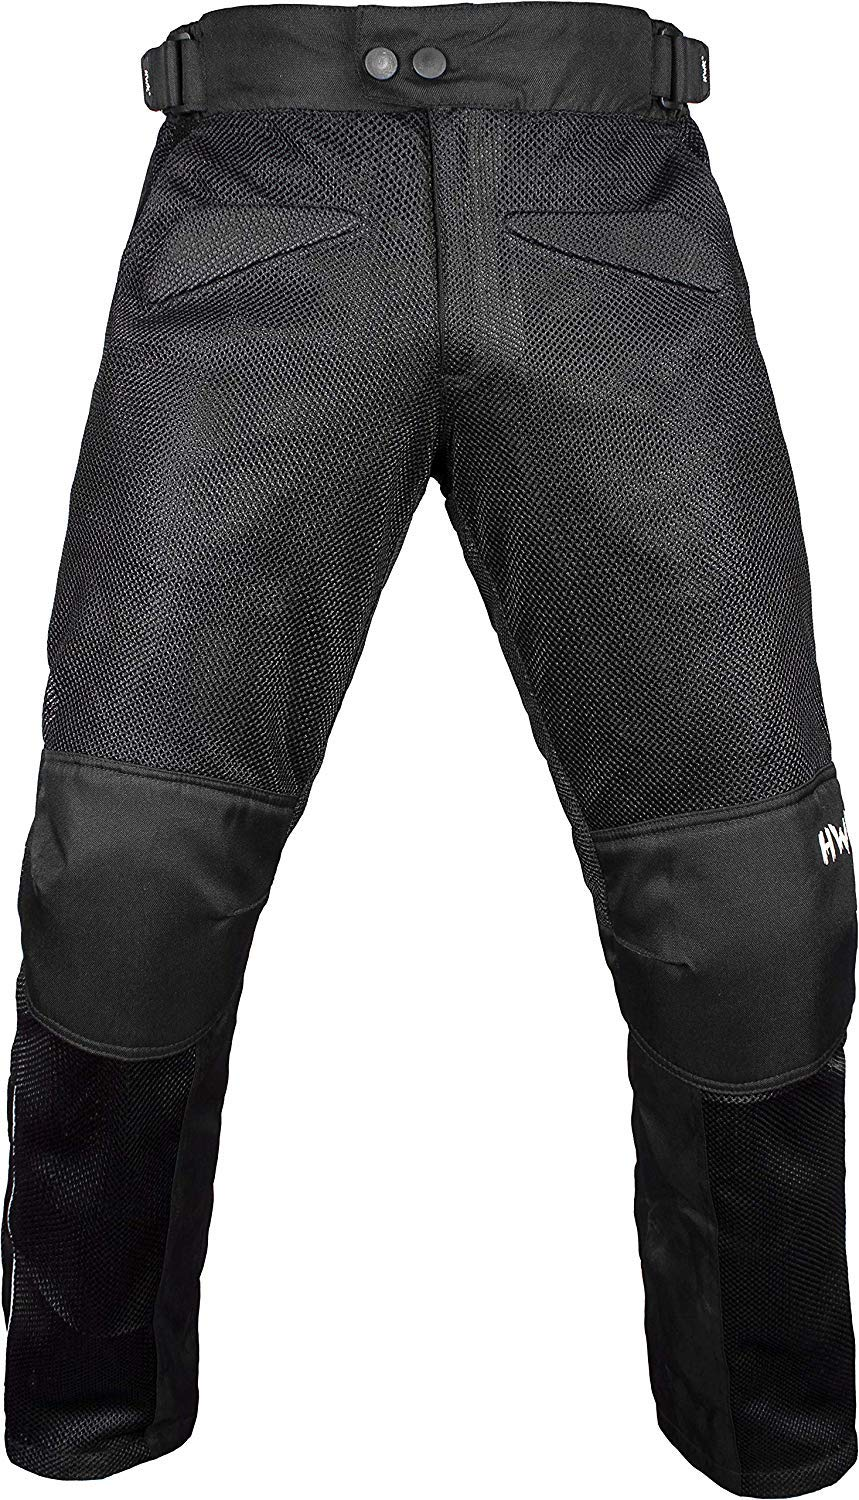 HWK Mesh Motorcycle Pants Air Motocross Dualsport Enduro ADV Touring Riding CE ARMORED Pants Motorbike Overpants Trousers (Waist42''-44'' Inseam32'') by HWK